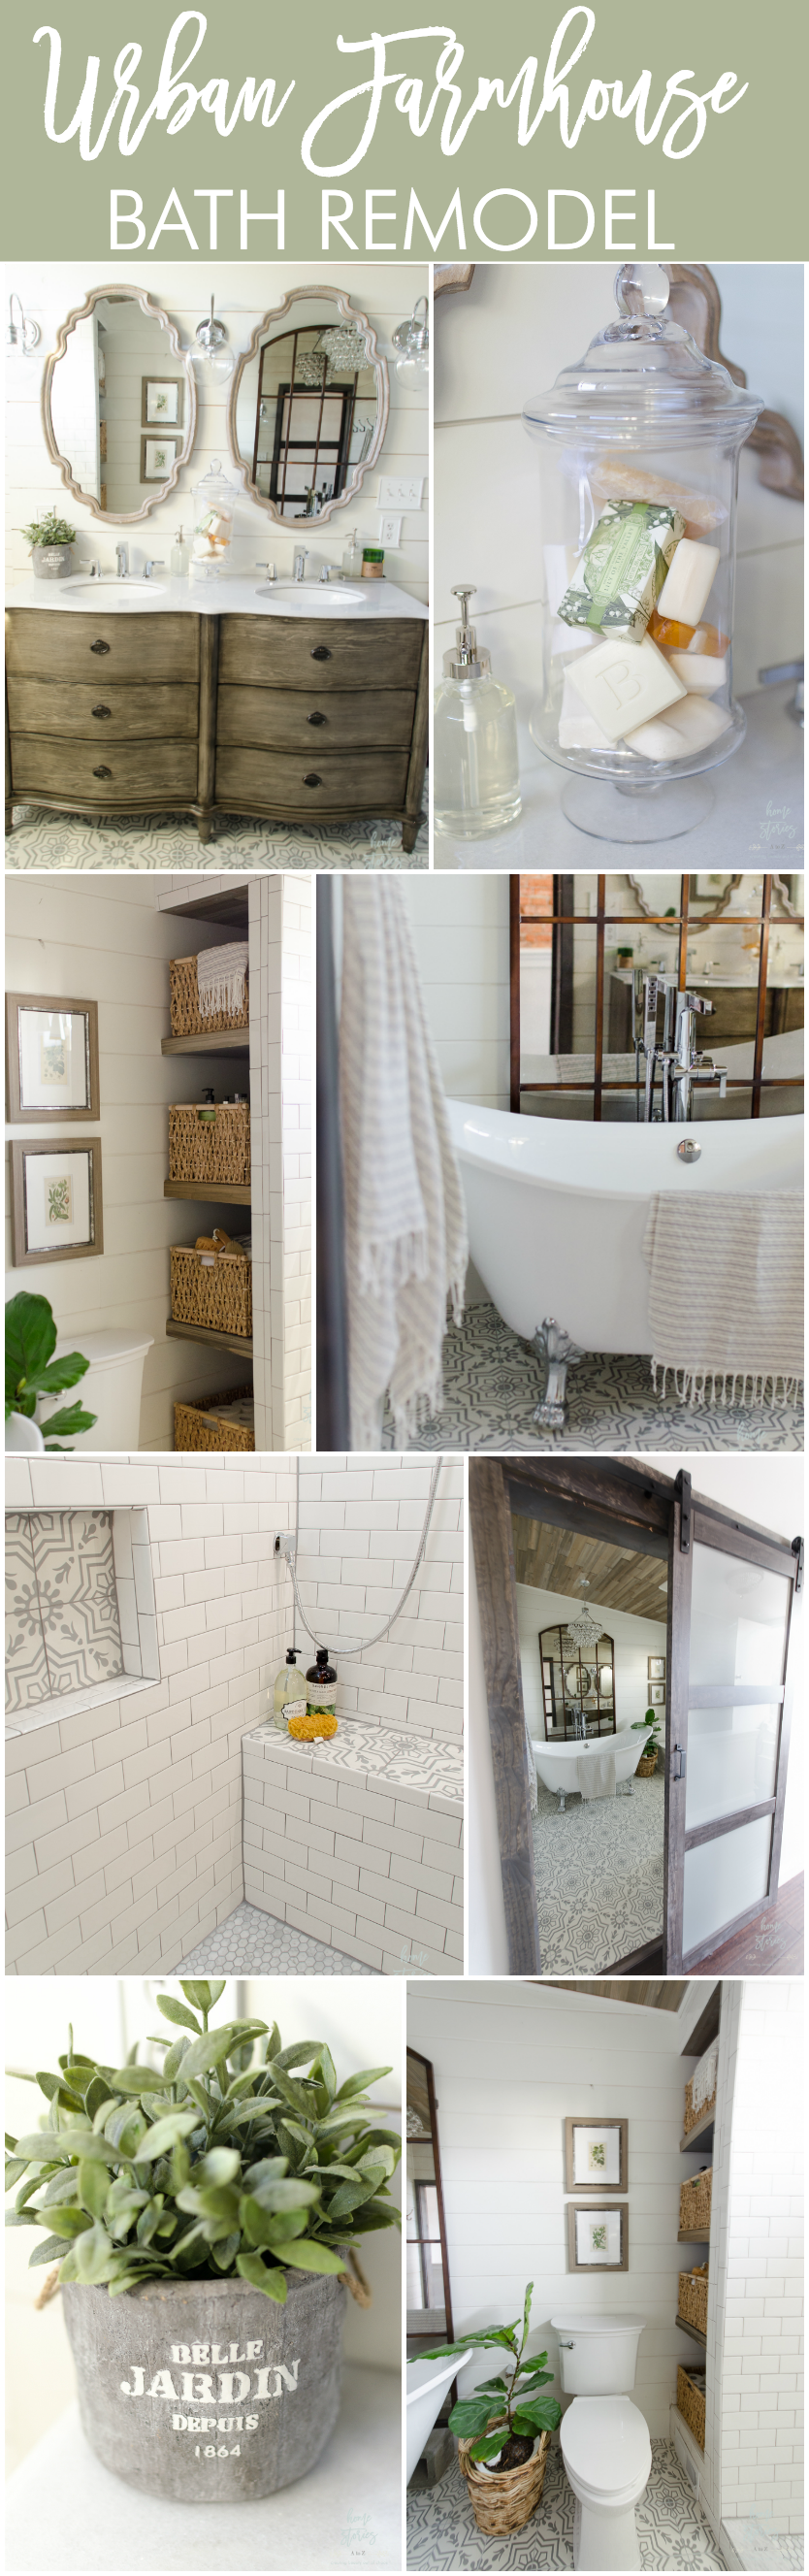 Unique Urban Farmhouse Master Bathroom Remodel